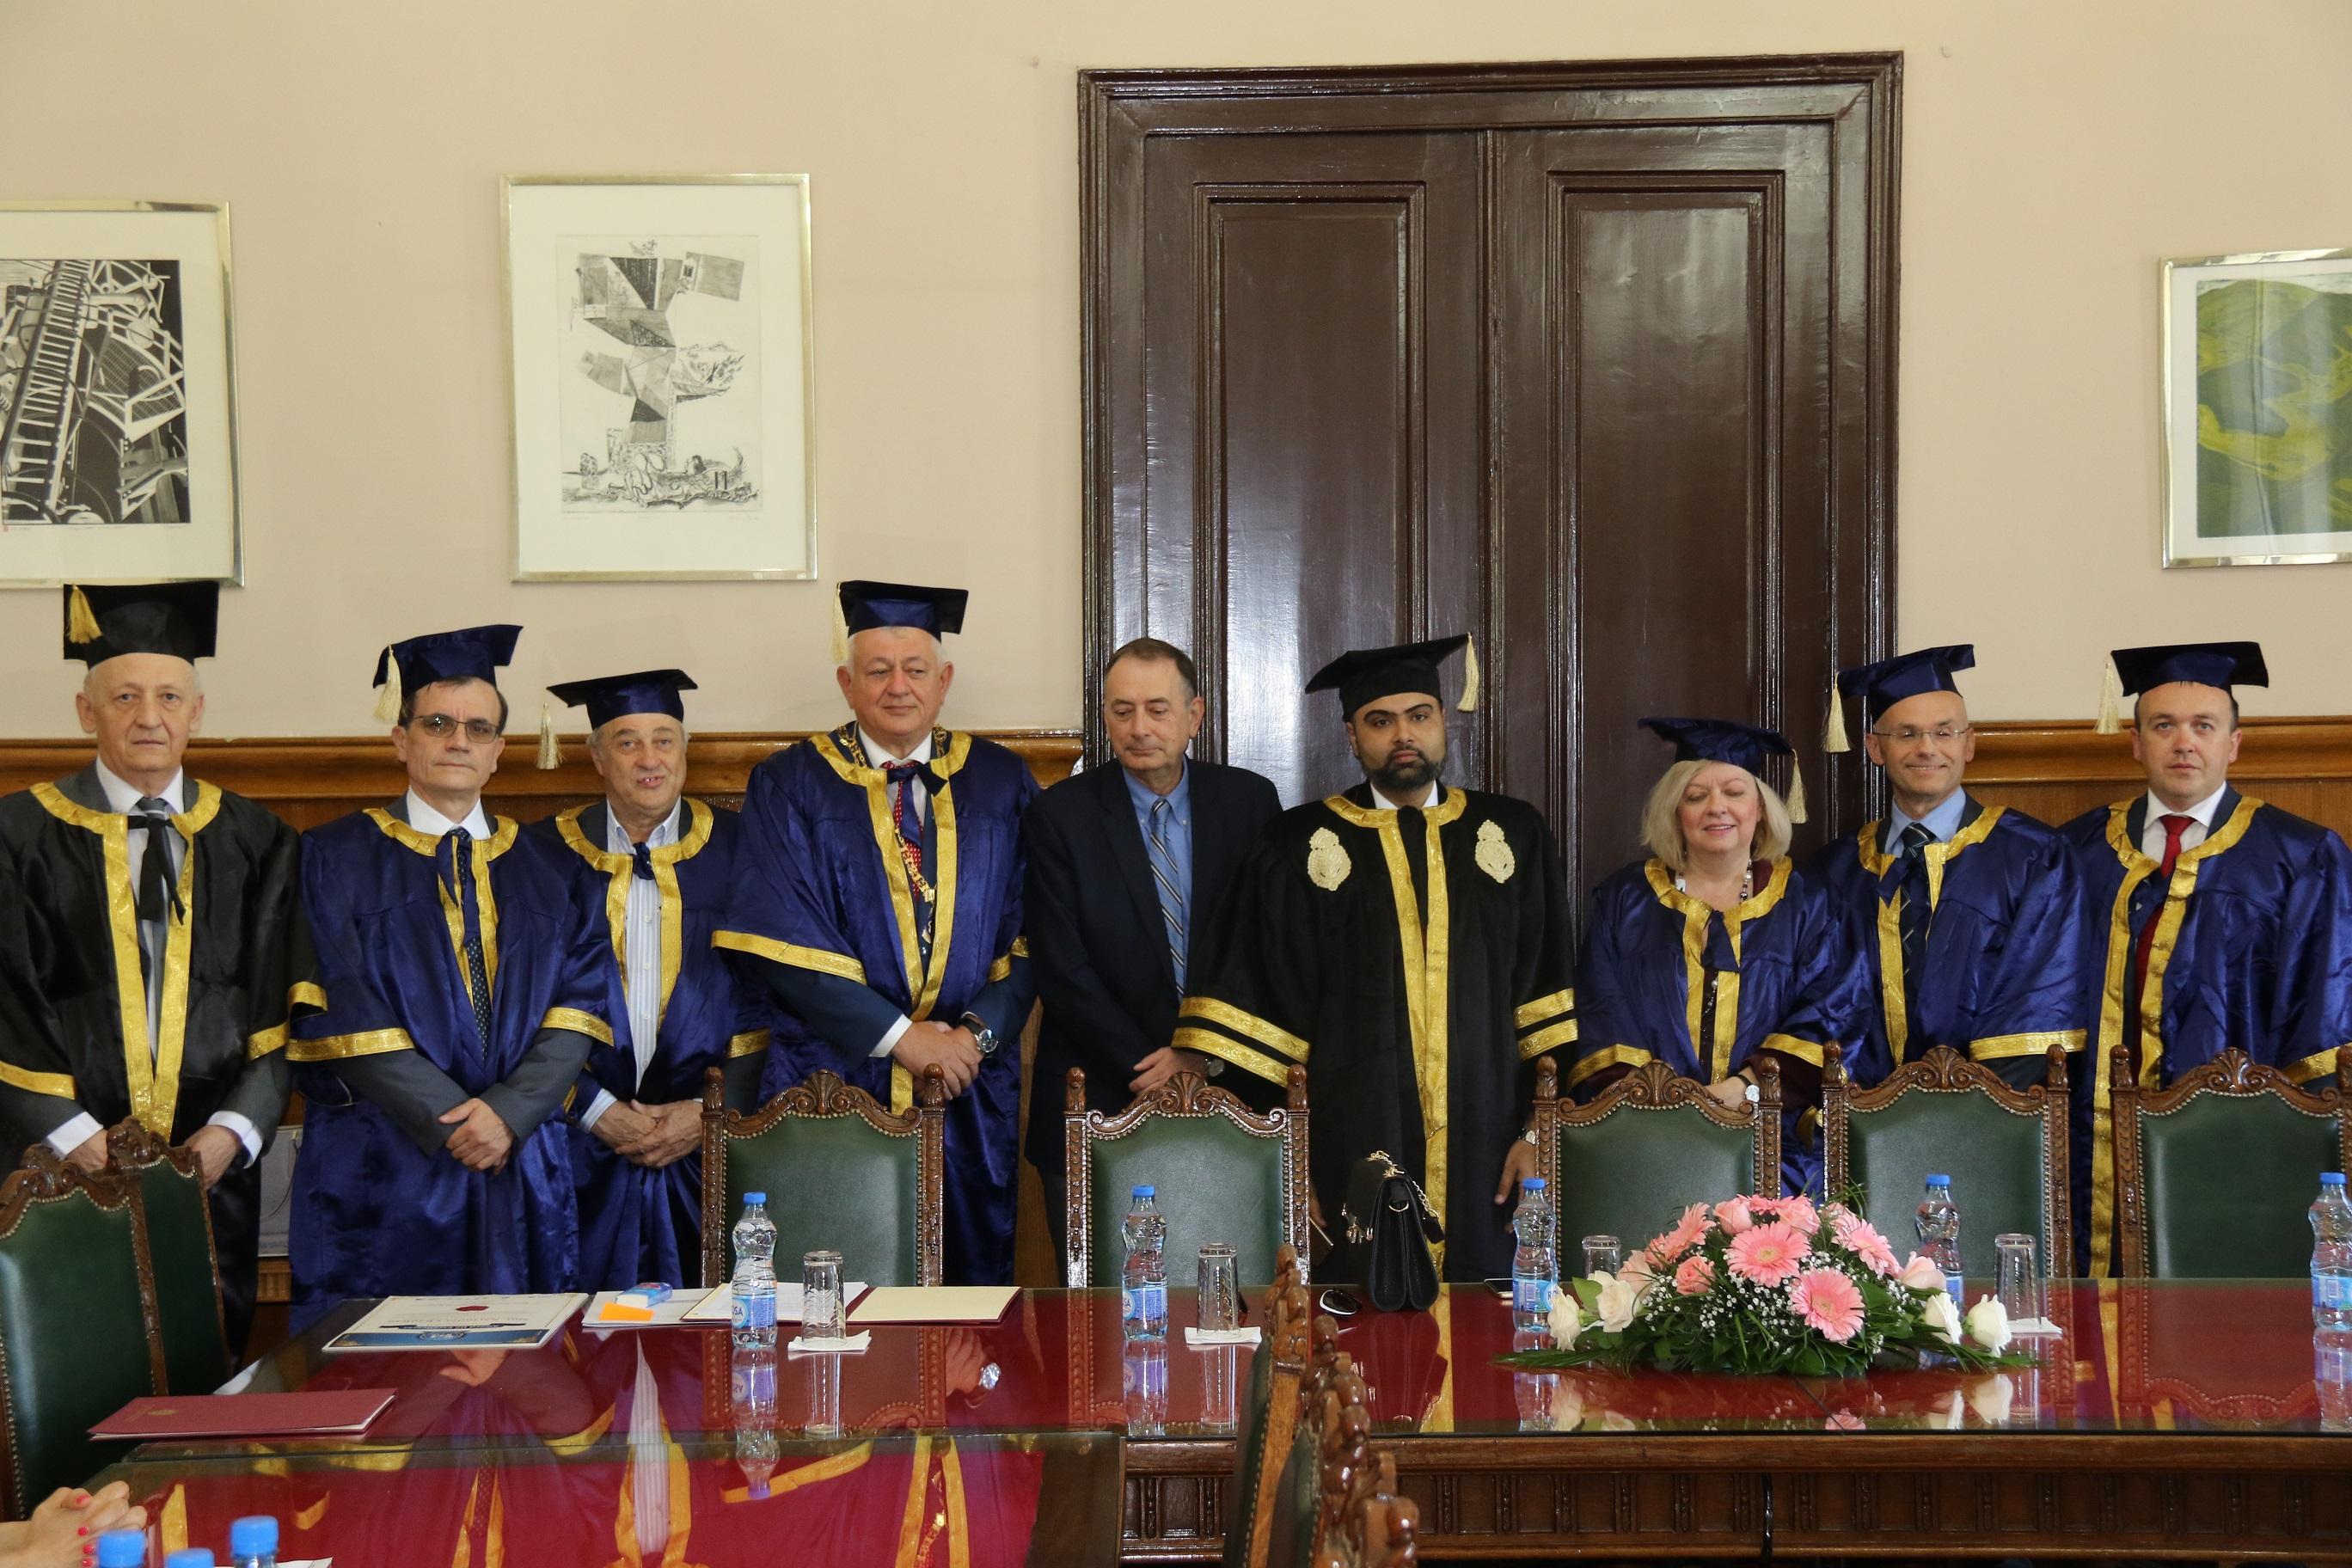 prof-dr-sirgd-singh-with-awardees-2